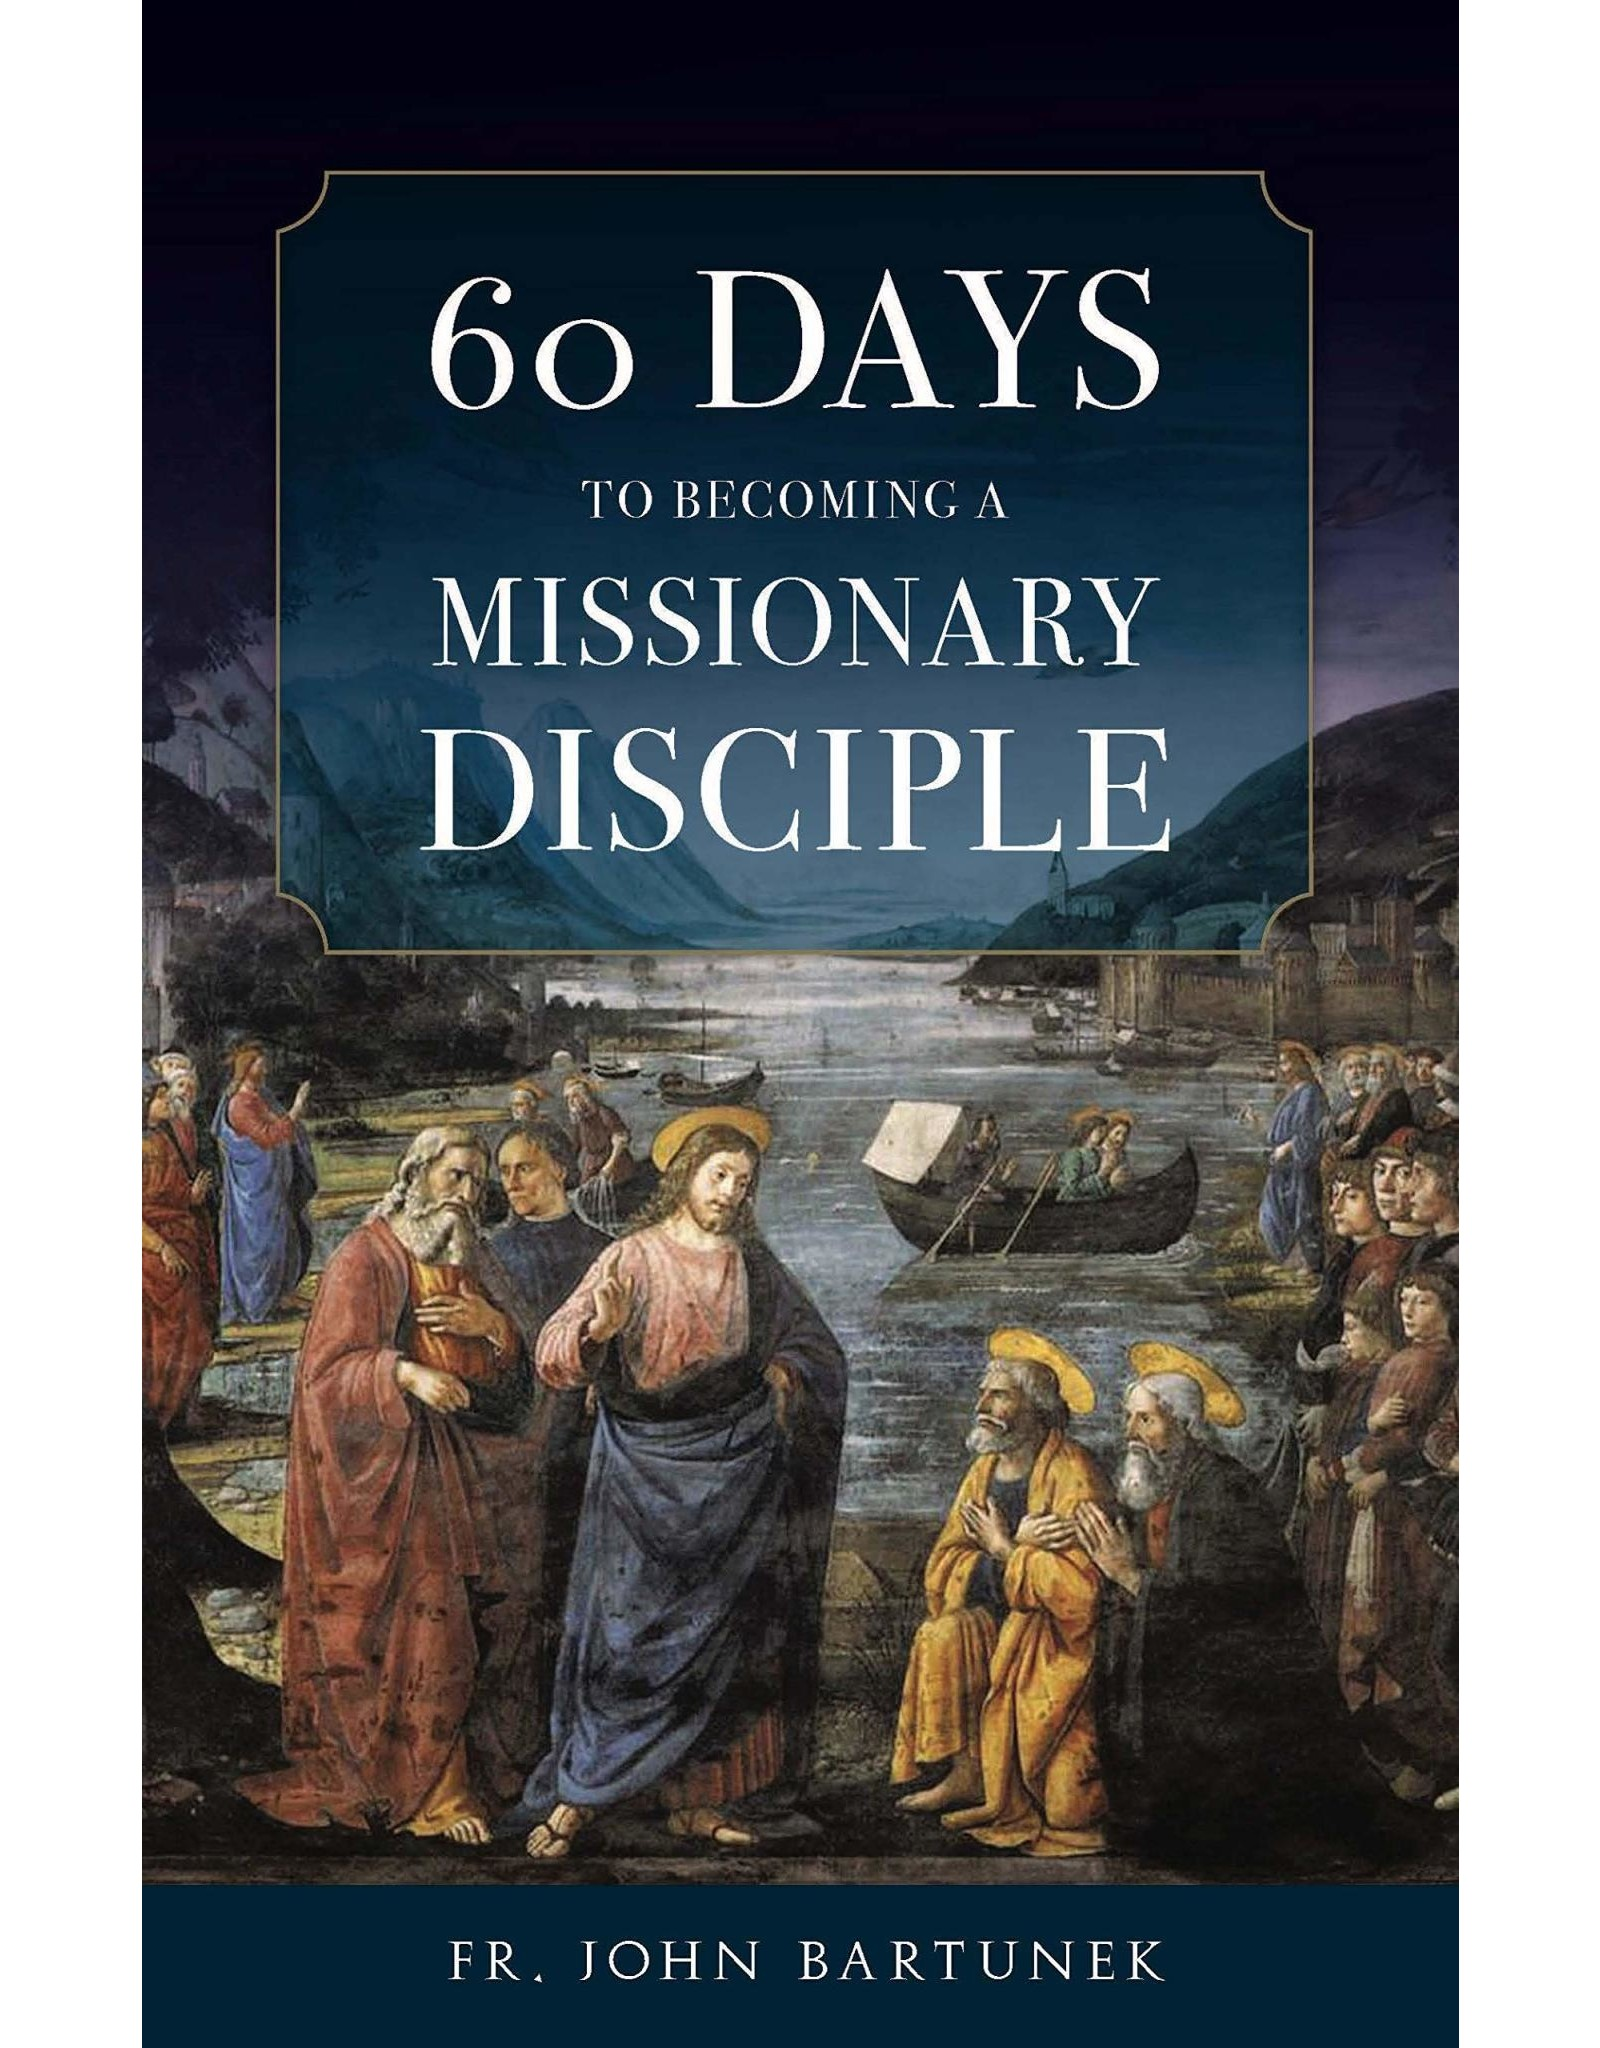 60 Days to Becoming a Missionary Disciple